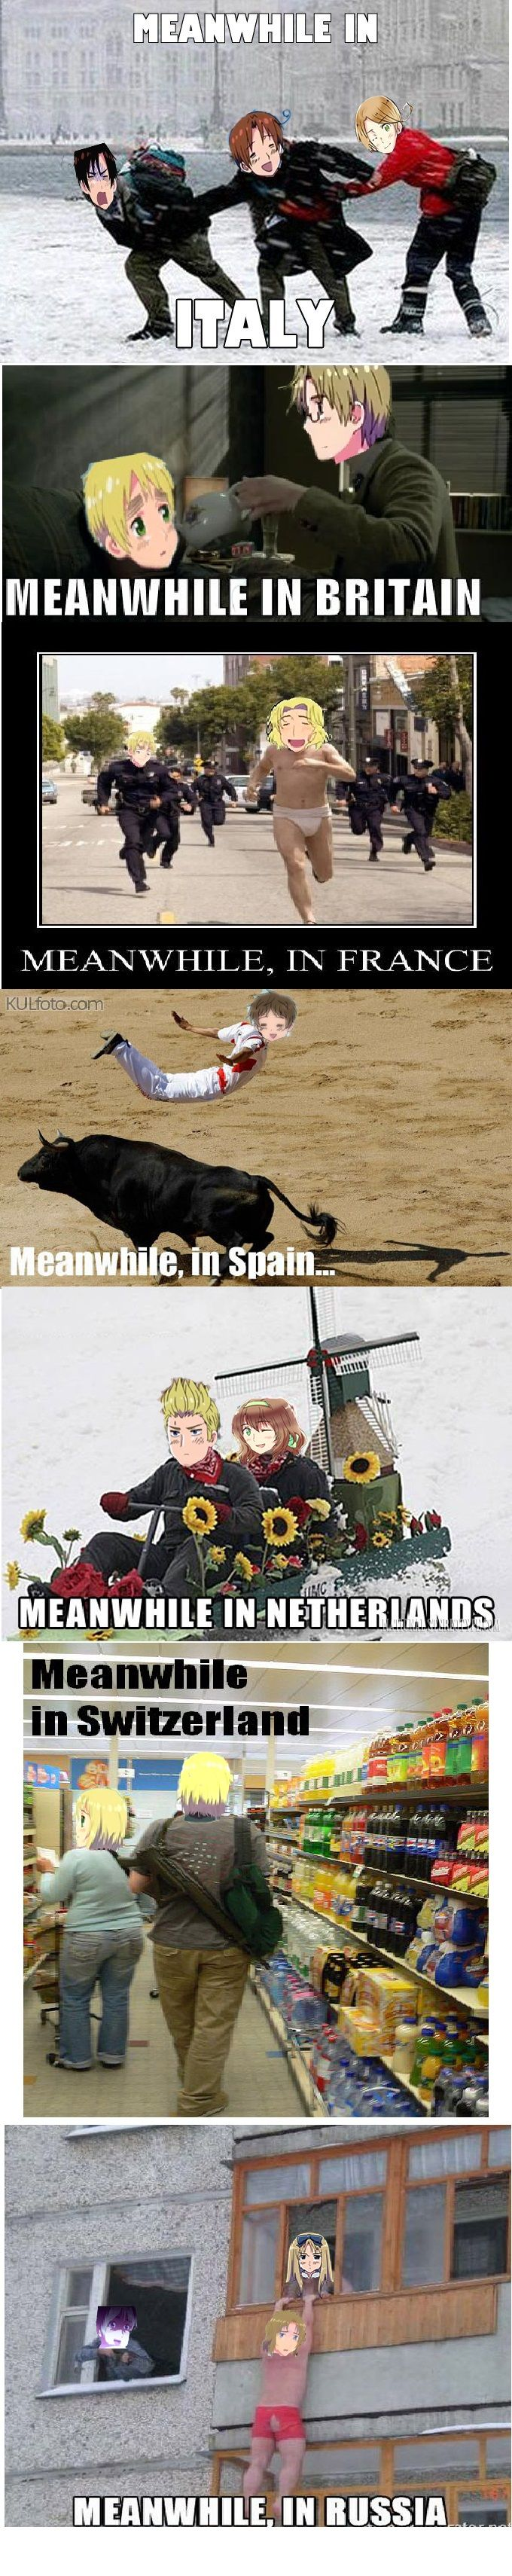 Meanwhile in Hetalia: Meanwhile in Hetalia